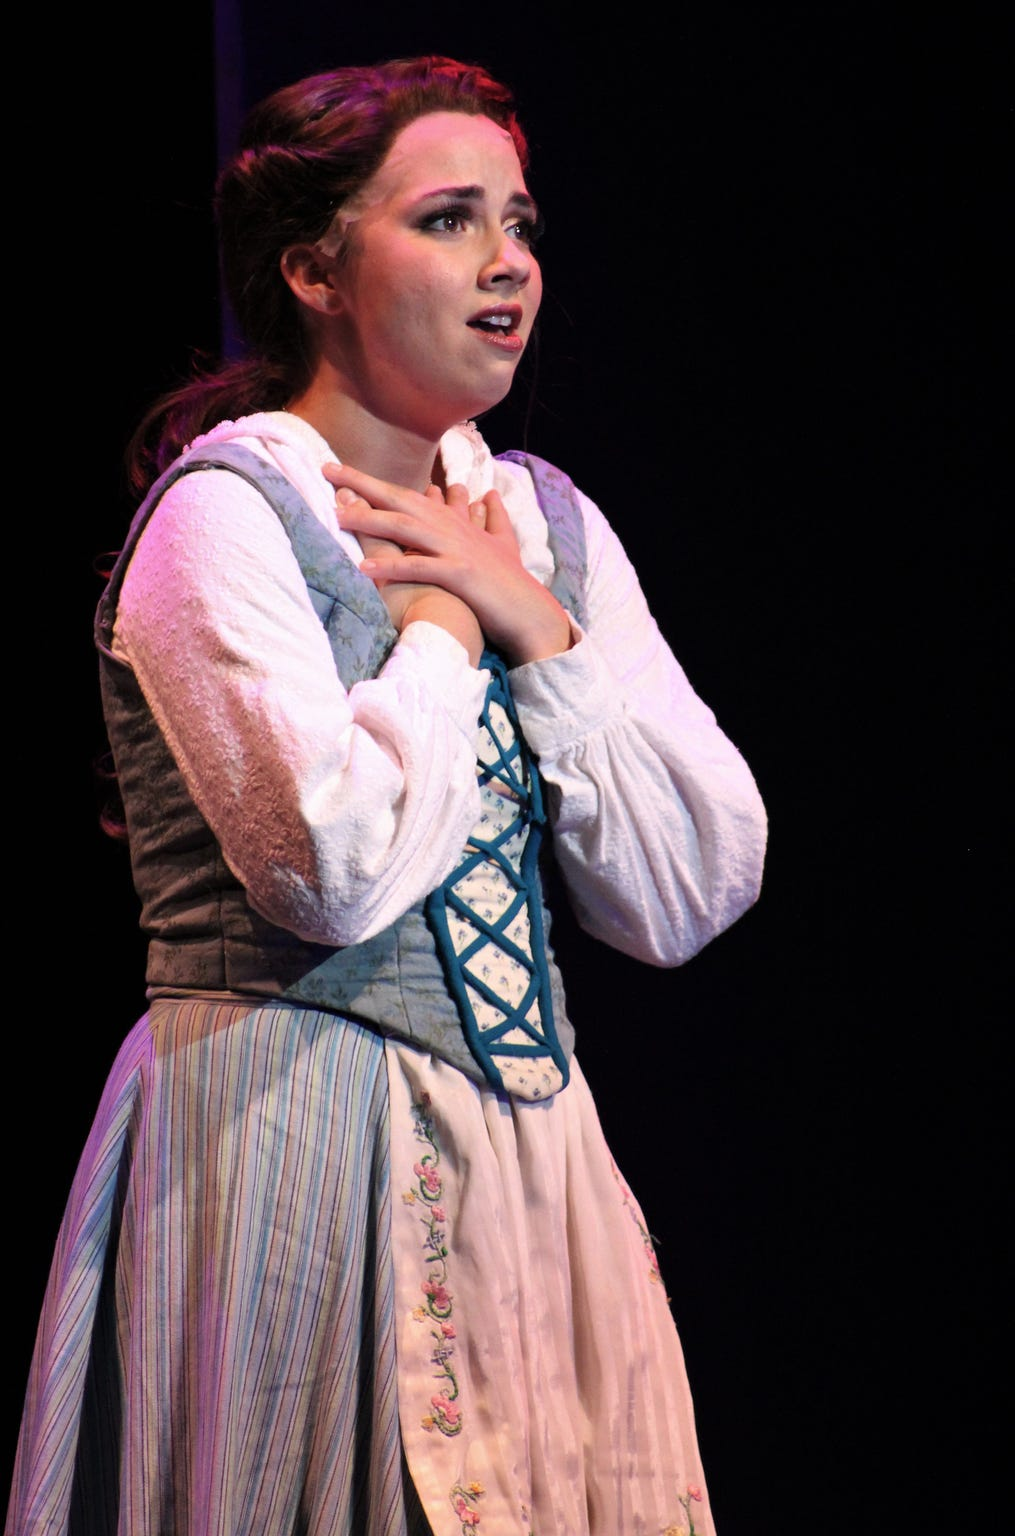 """Lauren McDonald is Belle, who is being wooed by Gaston and then finds herself detained by a Beast in his castle in Abilene Christian University's production of """"Beauty and the Best,"""" performed as the 2019 homecoming musical."""